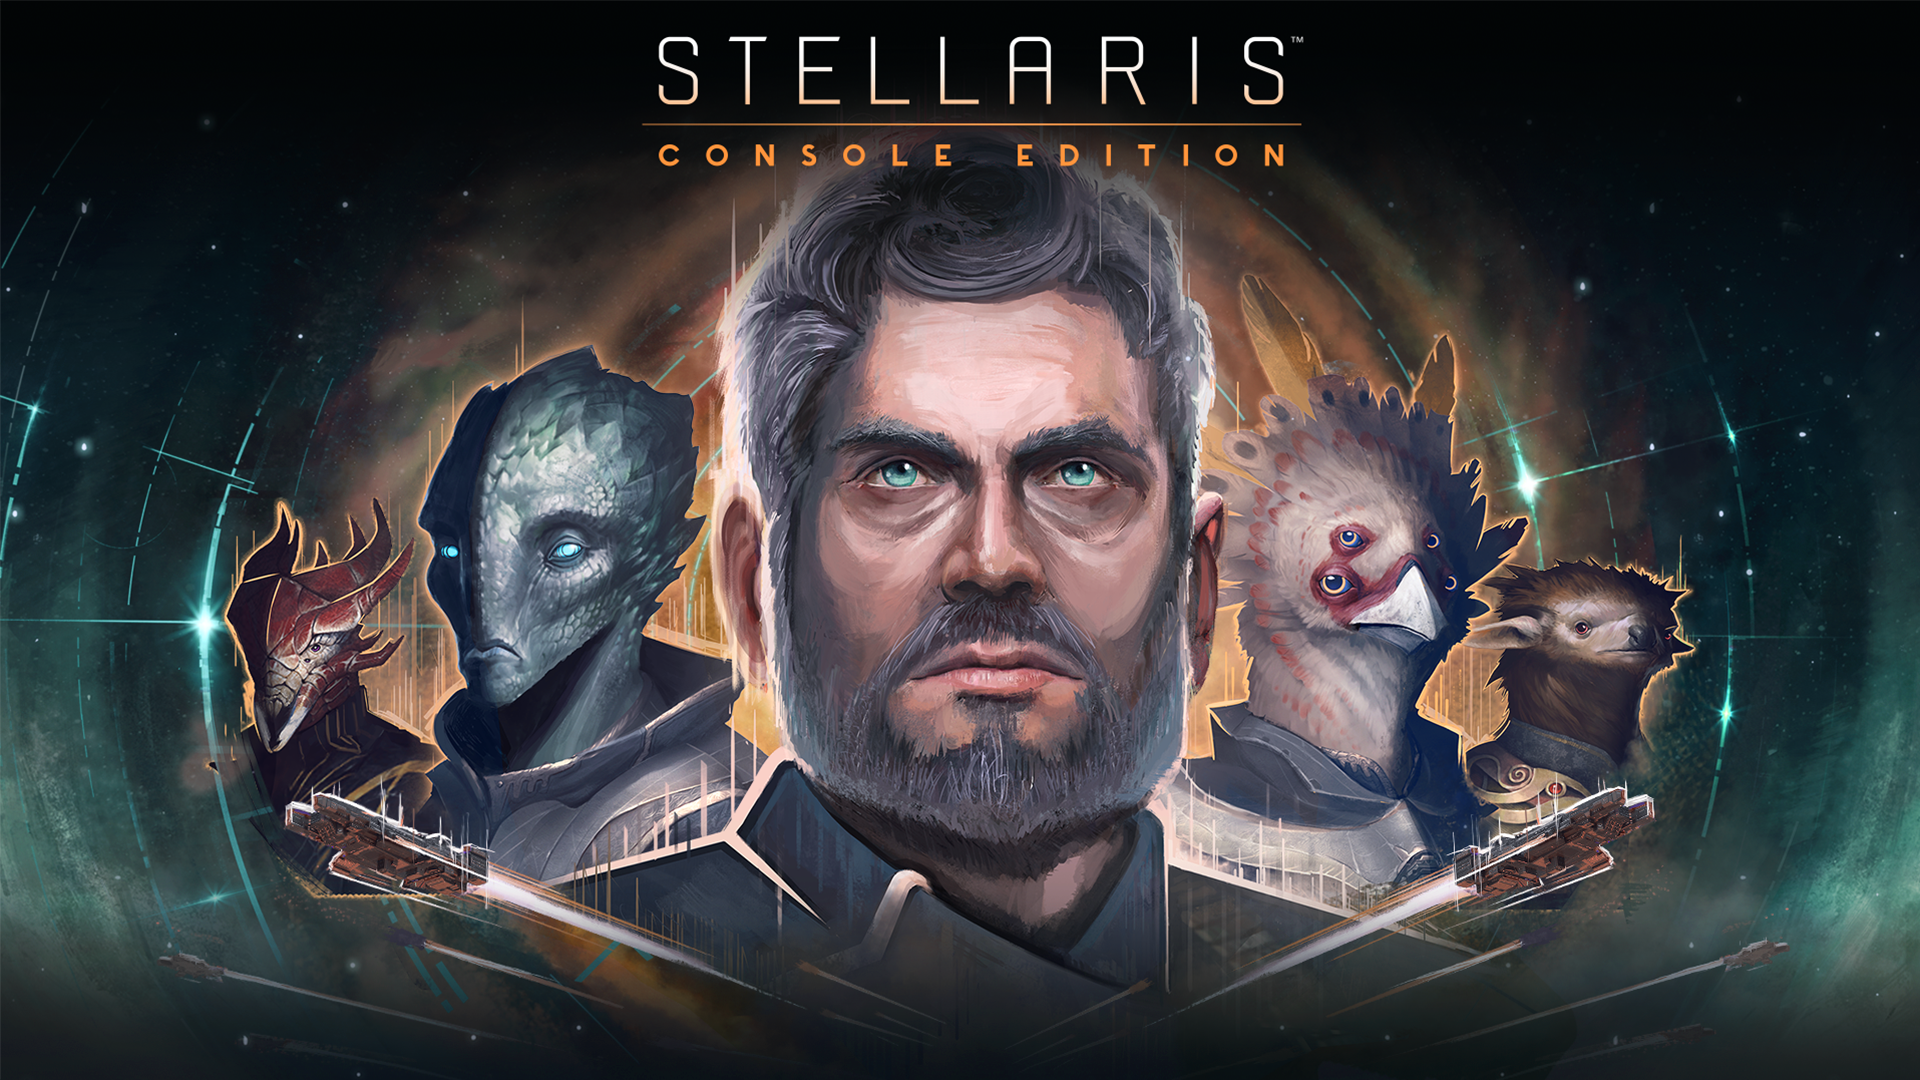 Stellaris: Console Edition Review - Out of This World